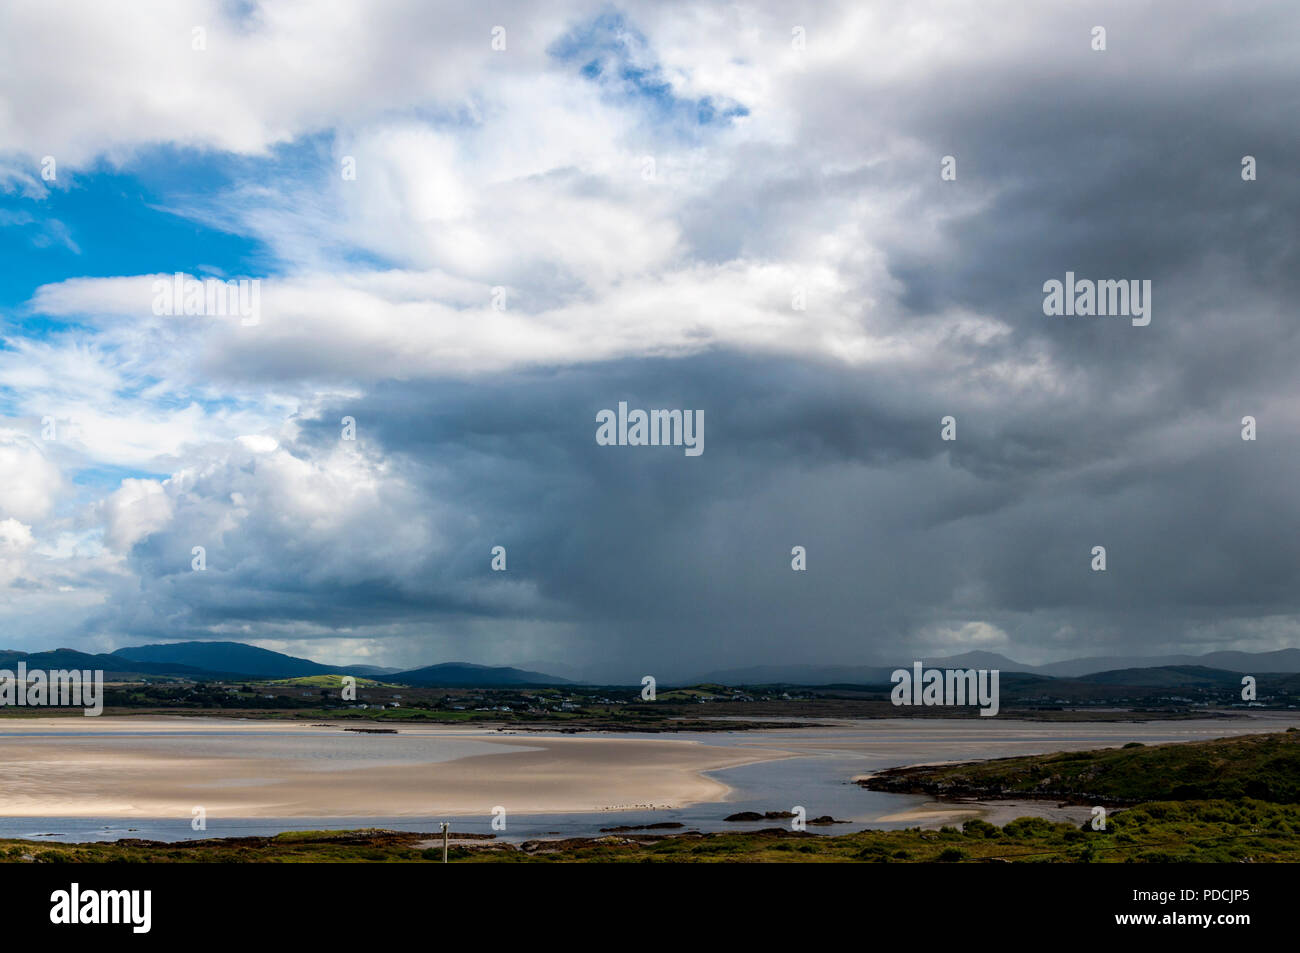 Ardara, County Donegal, Ireland weather. 9th August 2018. Rain showers move across the landscape on the north-west coast. Credit: Richard Wayman/Alamy Live News Stock Photo